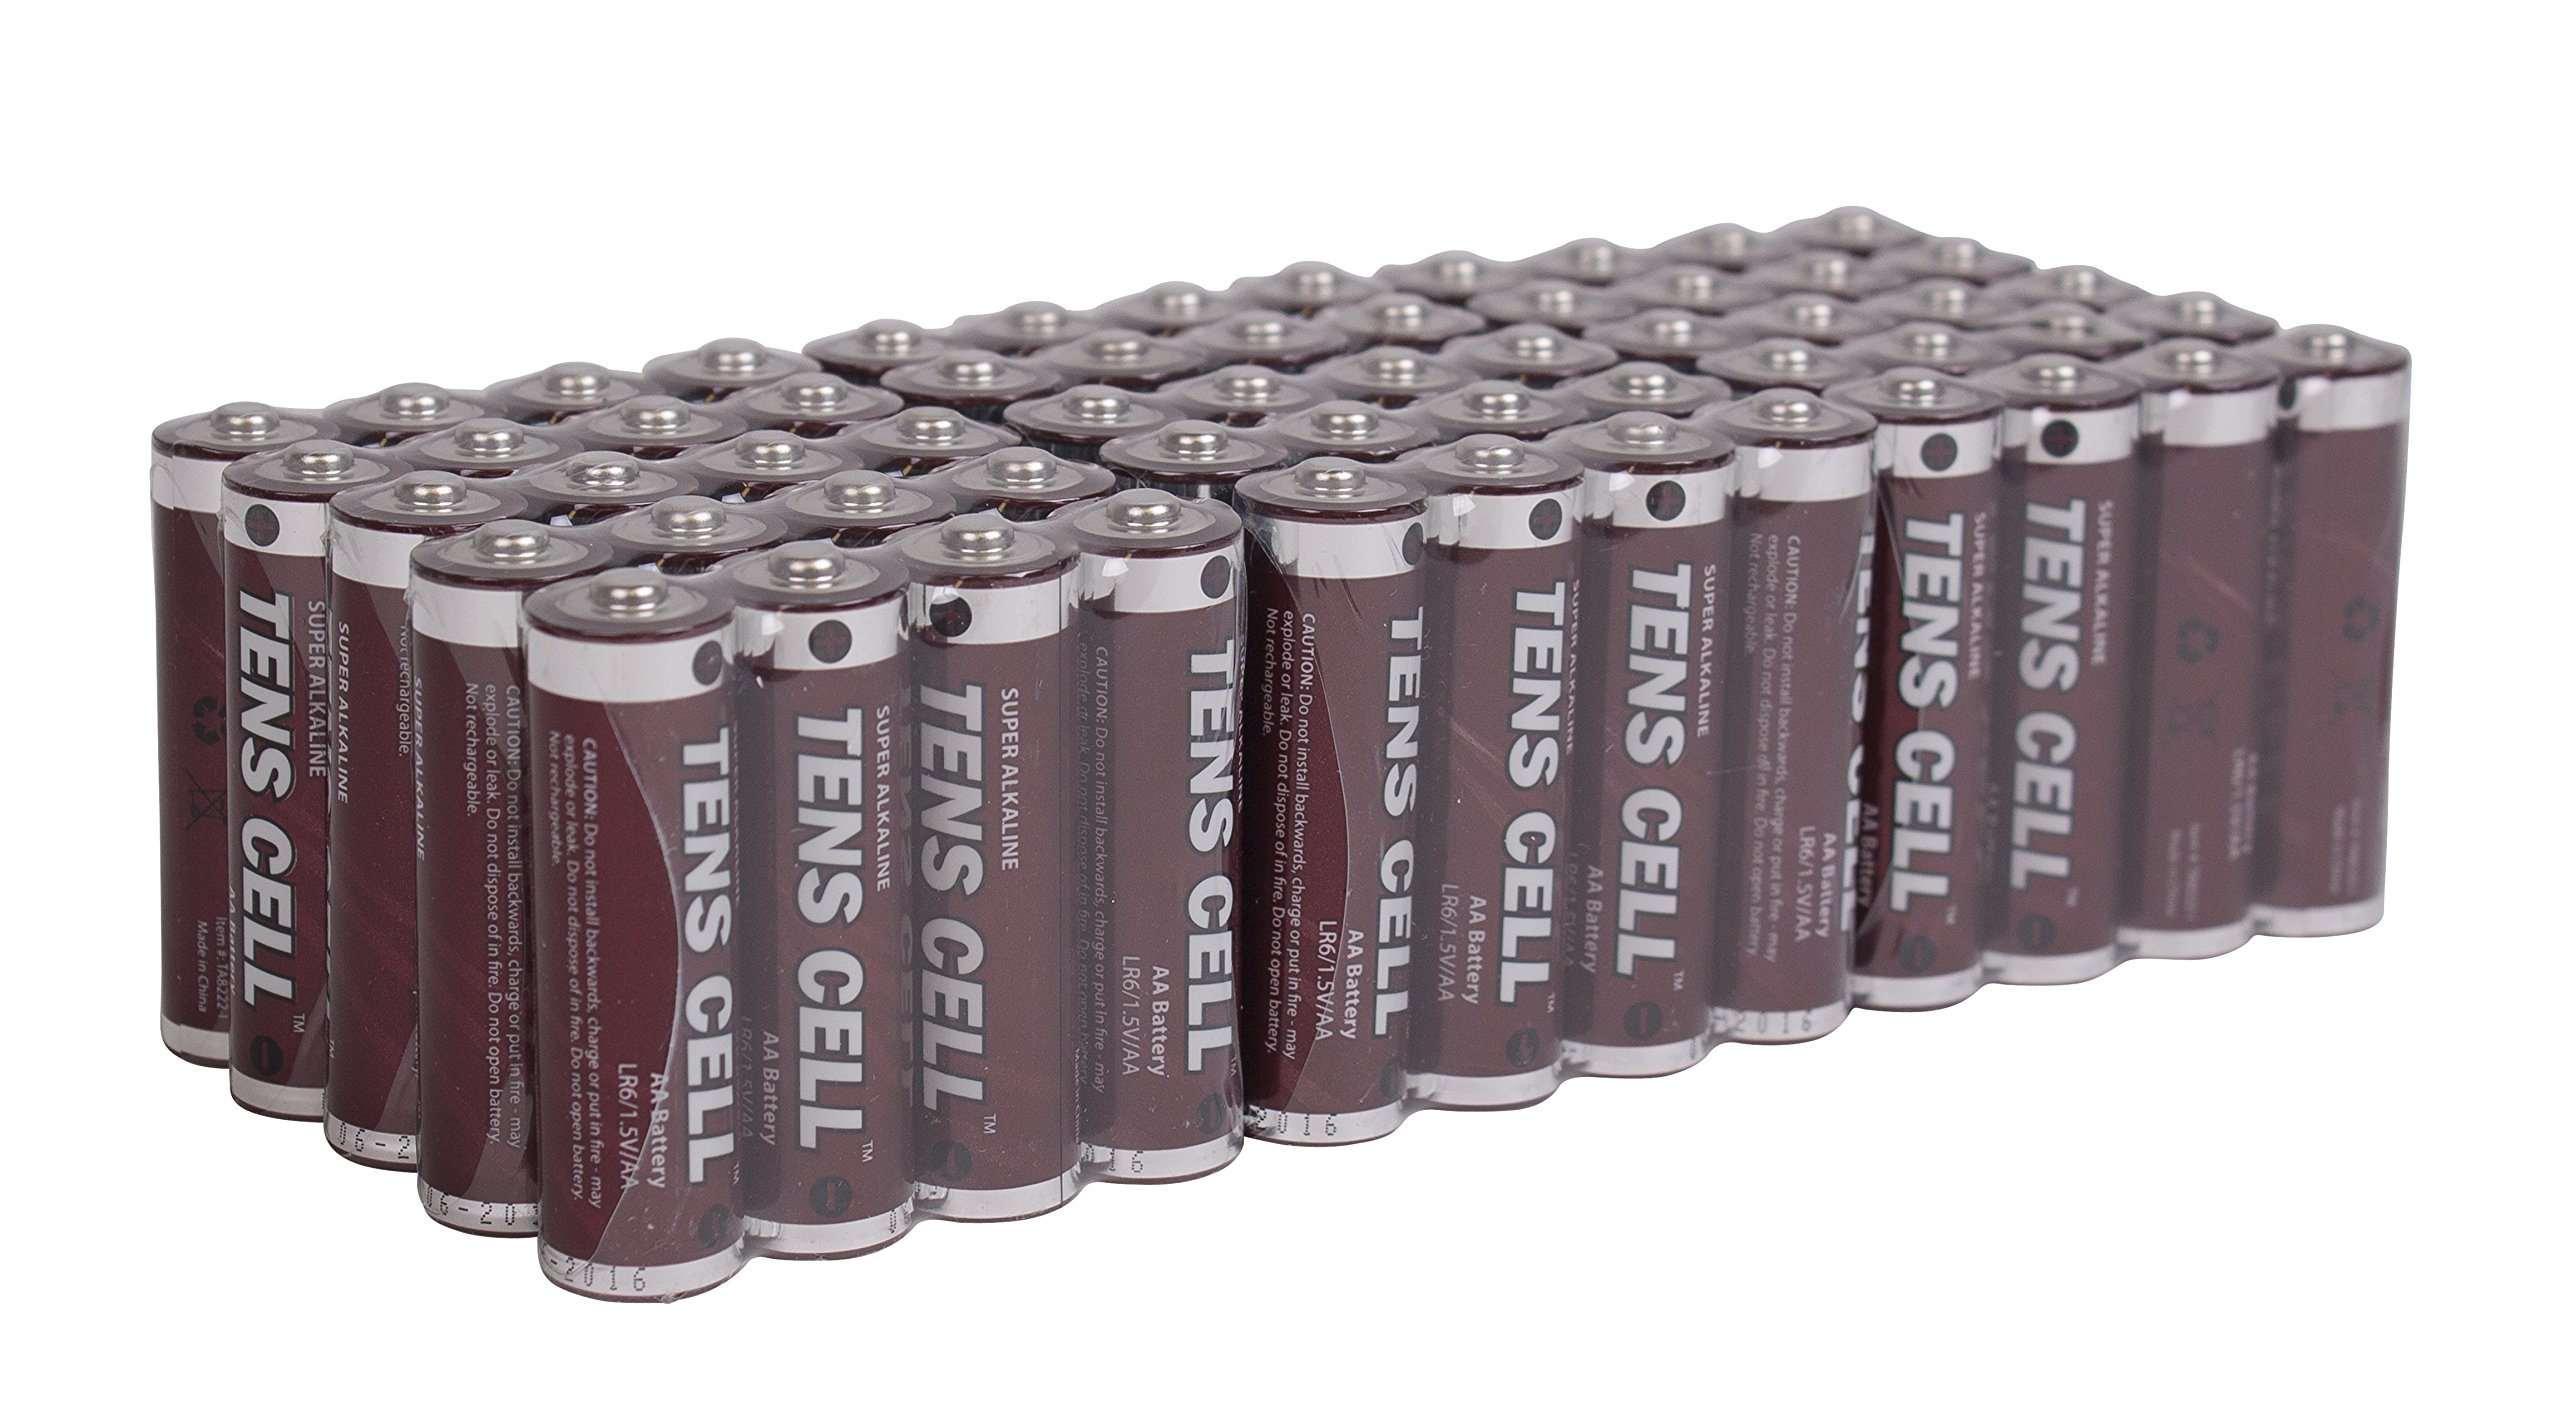 Premium Double A Batteries, Long Lasting AA Batteries, Alkaline, 60 Pack, 1.5V